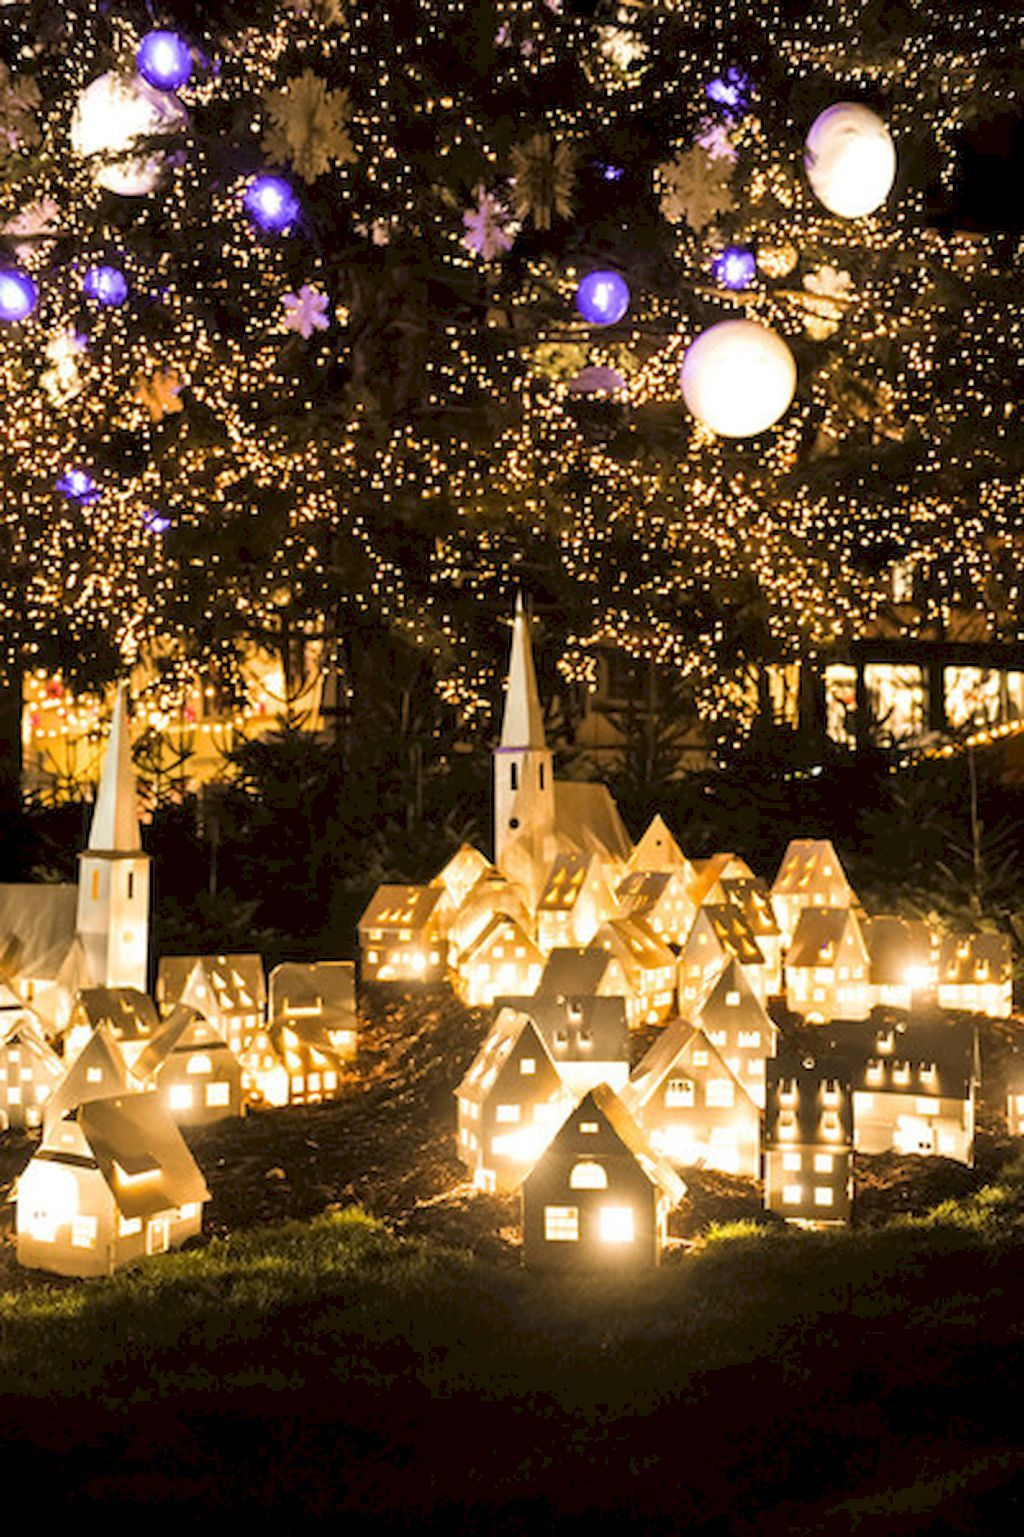 35 beautiful christmas decorations outdoor lights ideas livingmarchcom - Unusual Christmas Decorations Outdoor